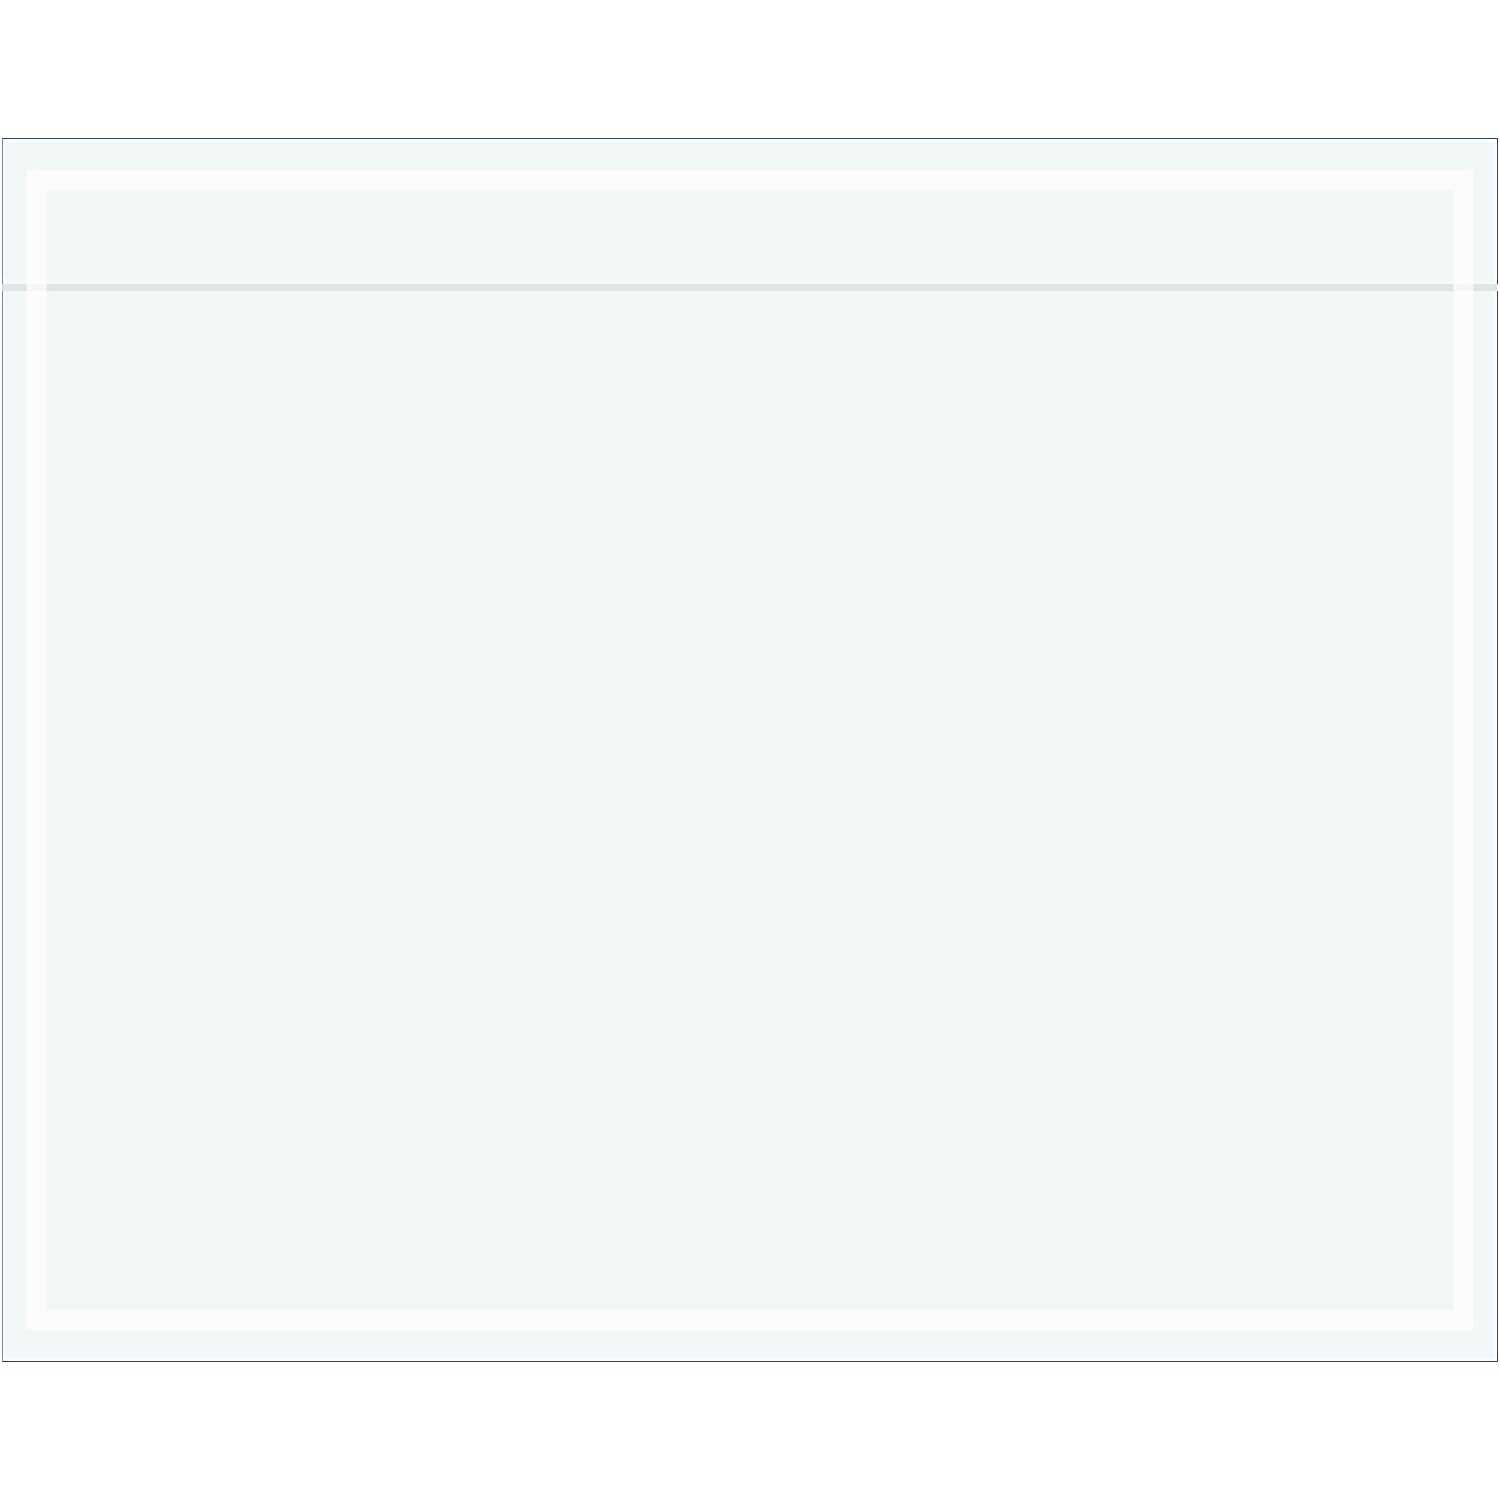 Tape Logic TLPL522 Clear Face Document Envelopes, 5 1/2' x 4 1/2', Clear (Pack of 1000) 5 1/2 x 4 1/2